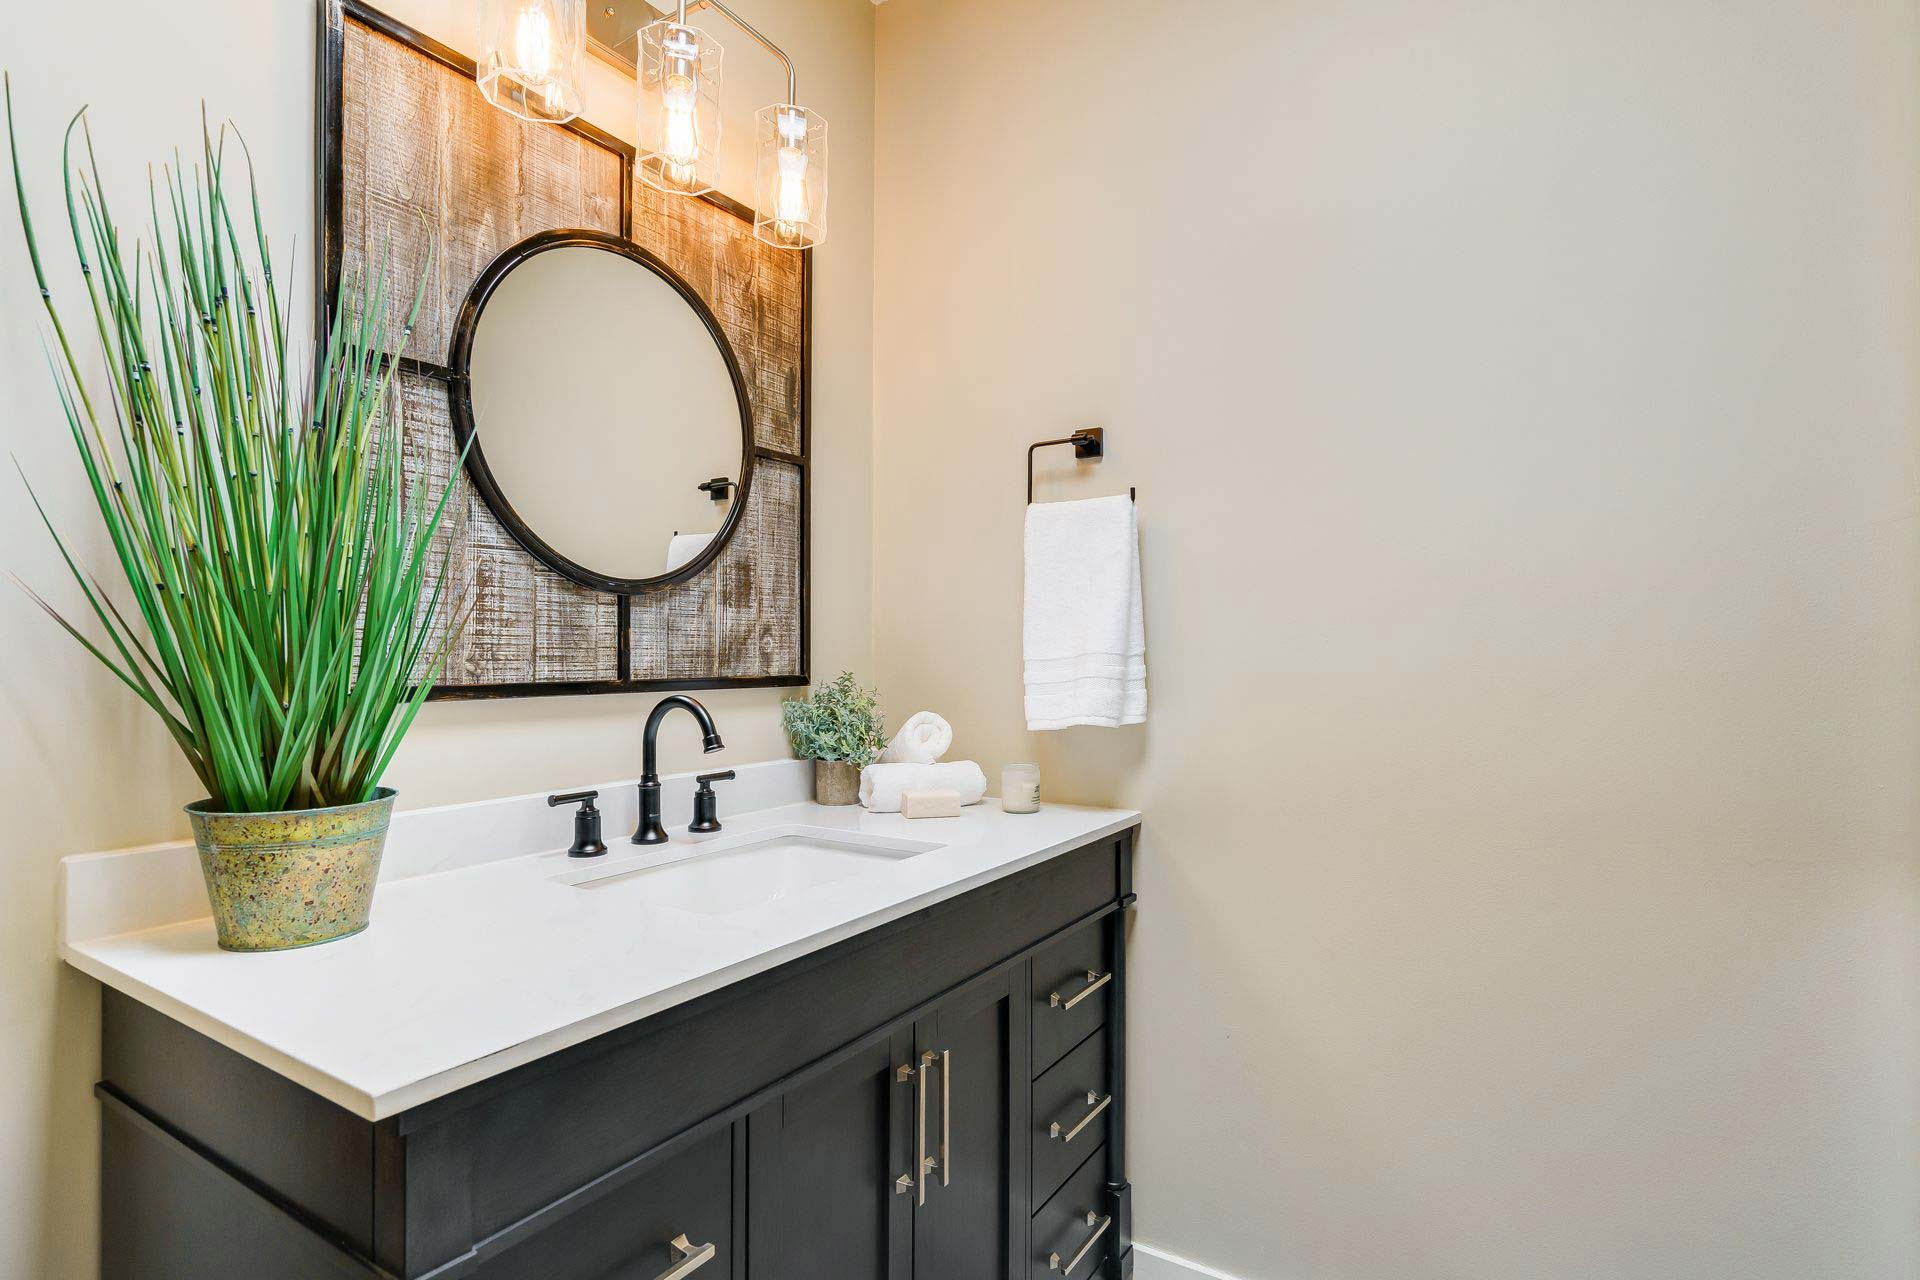 Bathroom Renovations, Remodeling, and Bathroom Contractor in Scottsdale for your home